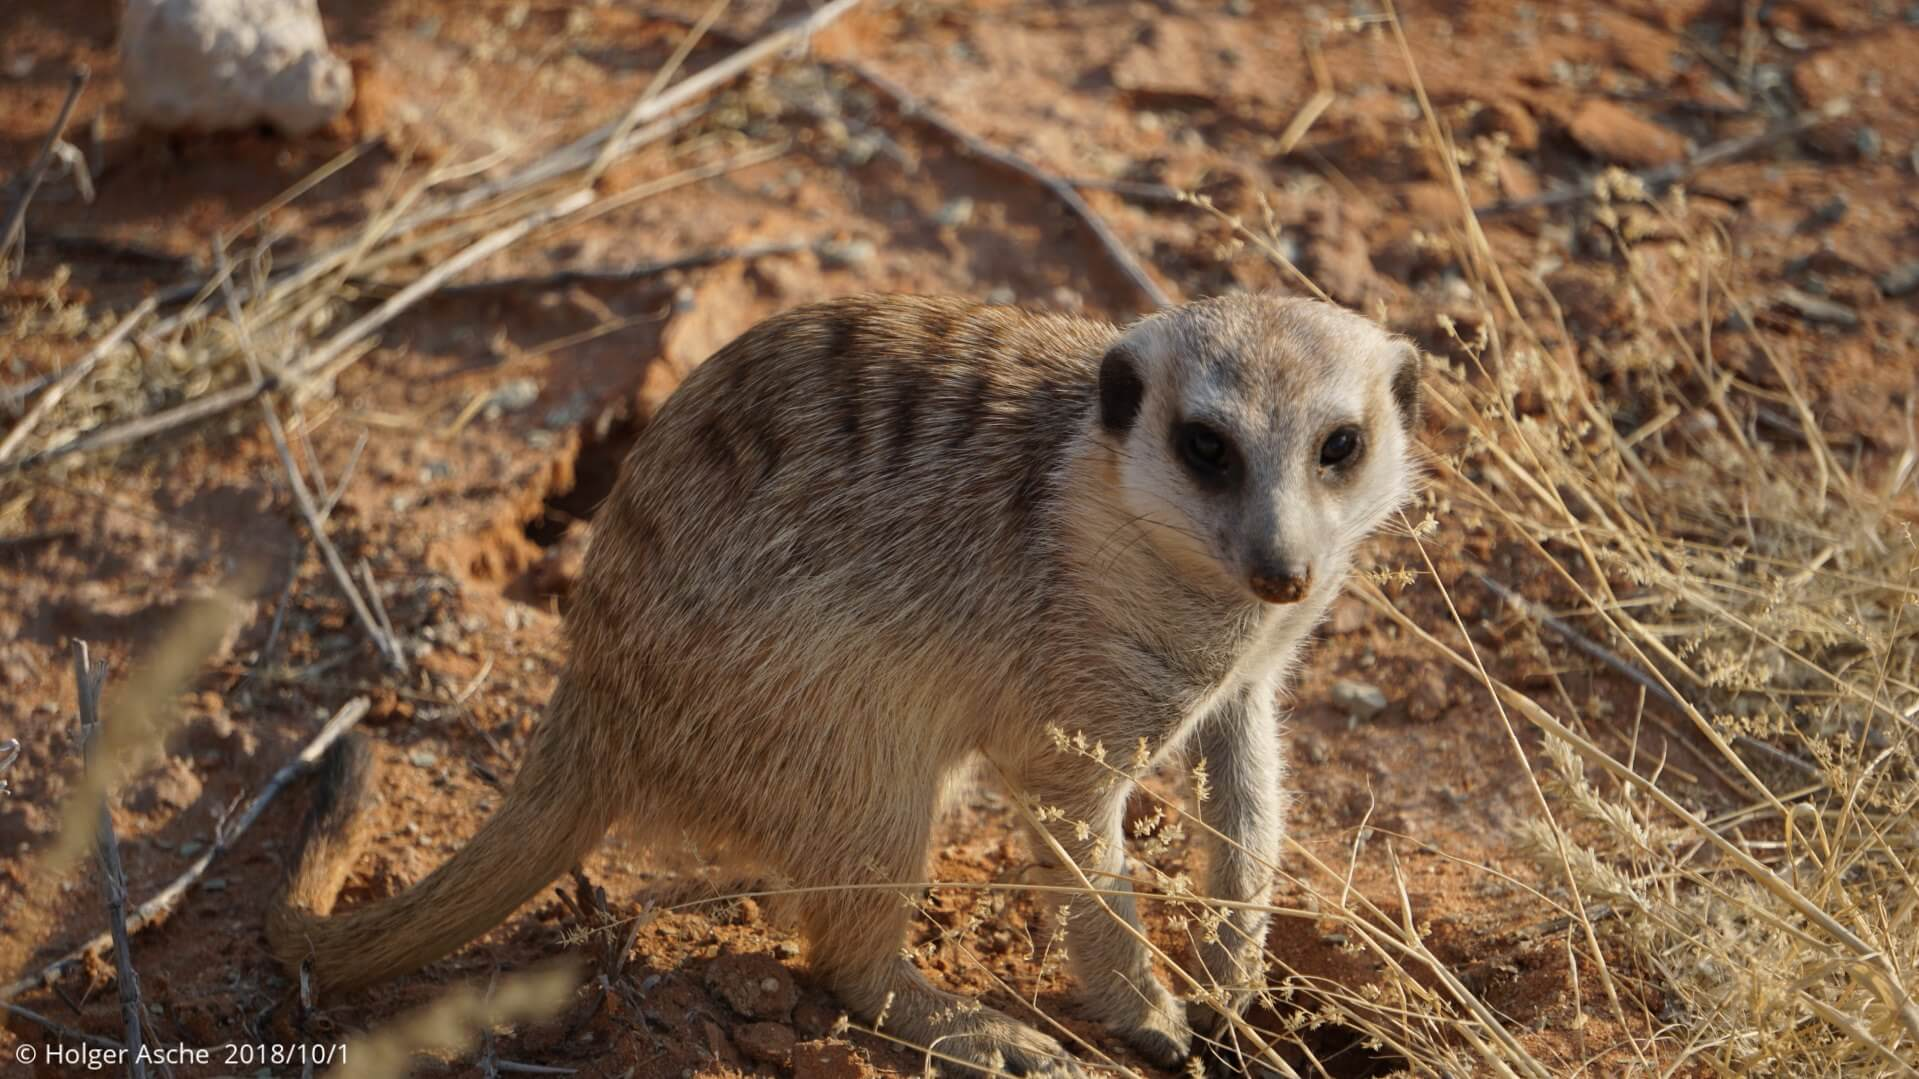 Merkat in the sand, Kgalagadi, South Africa